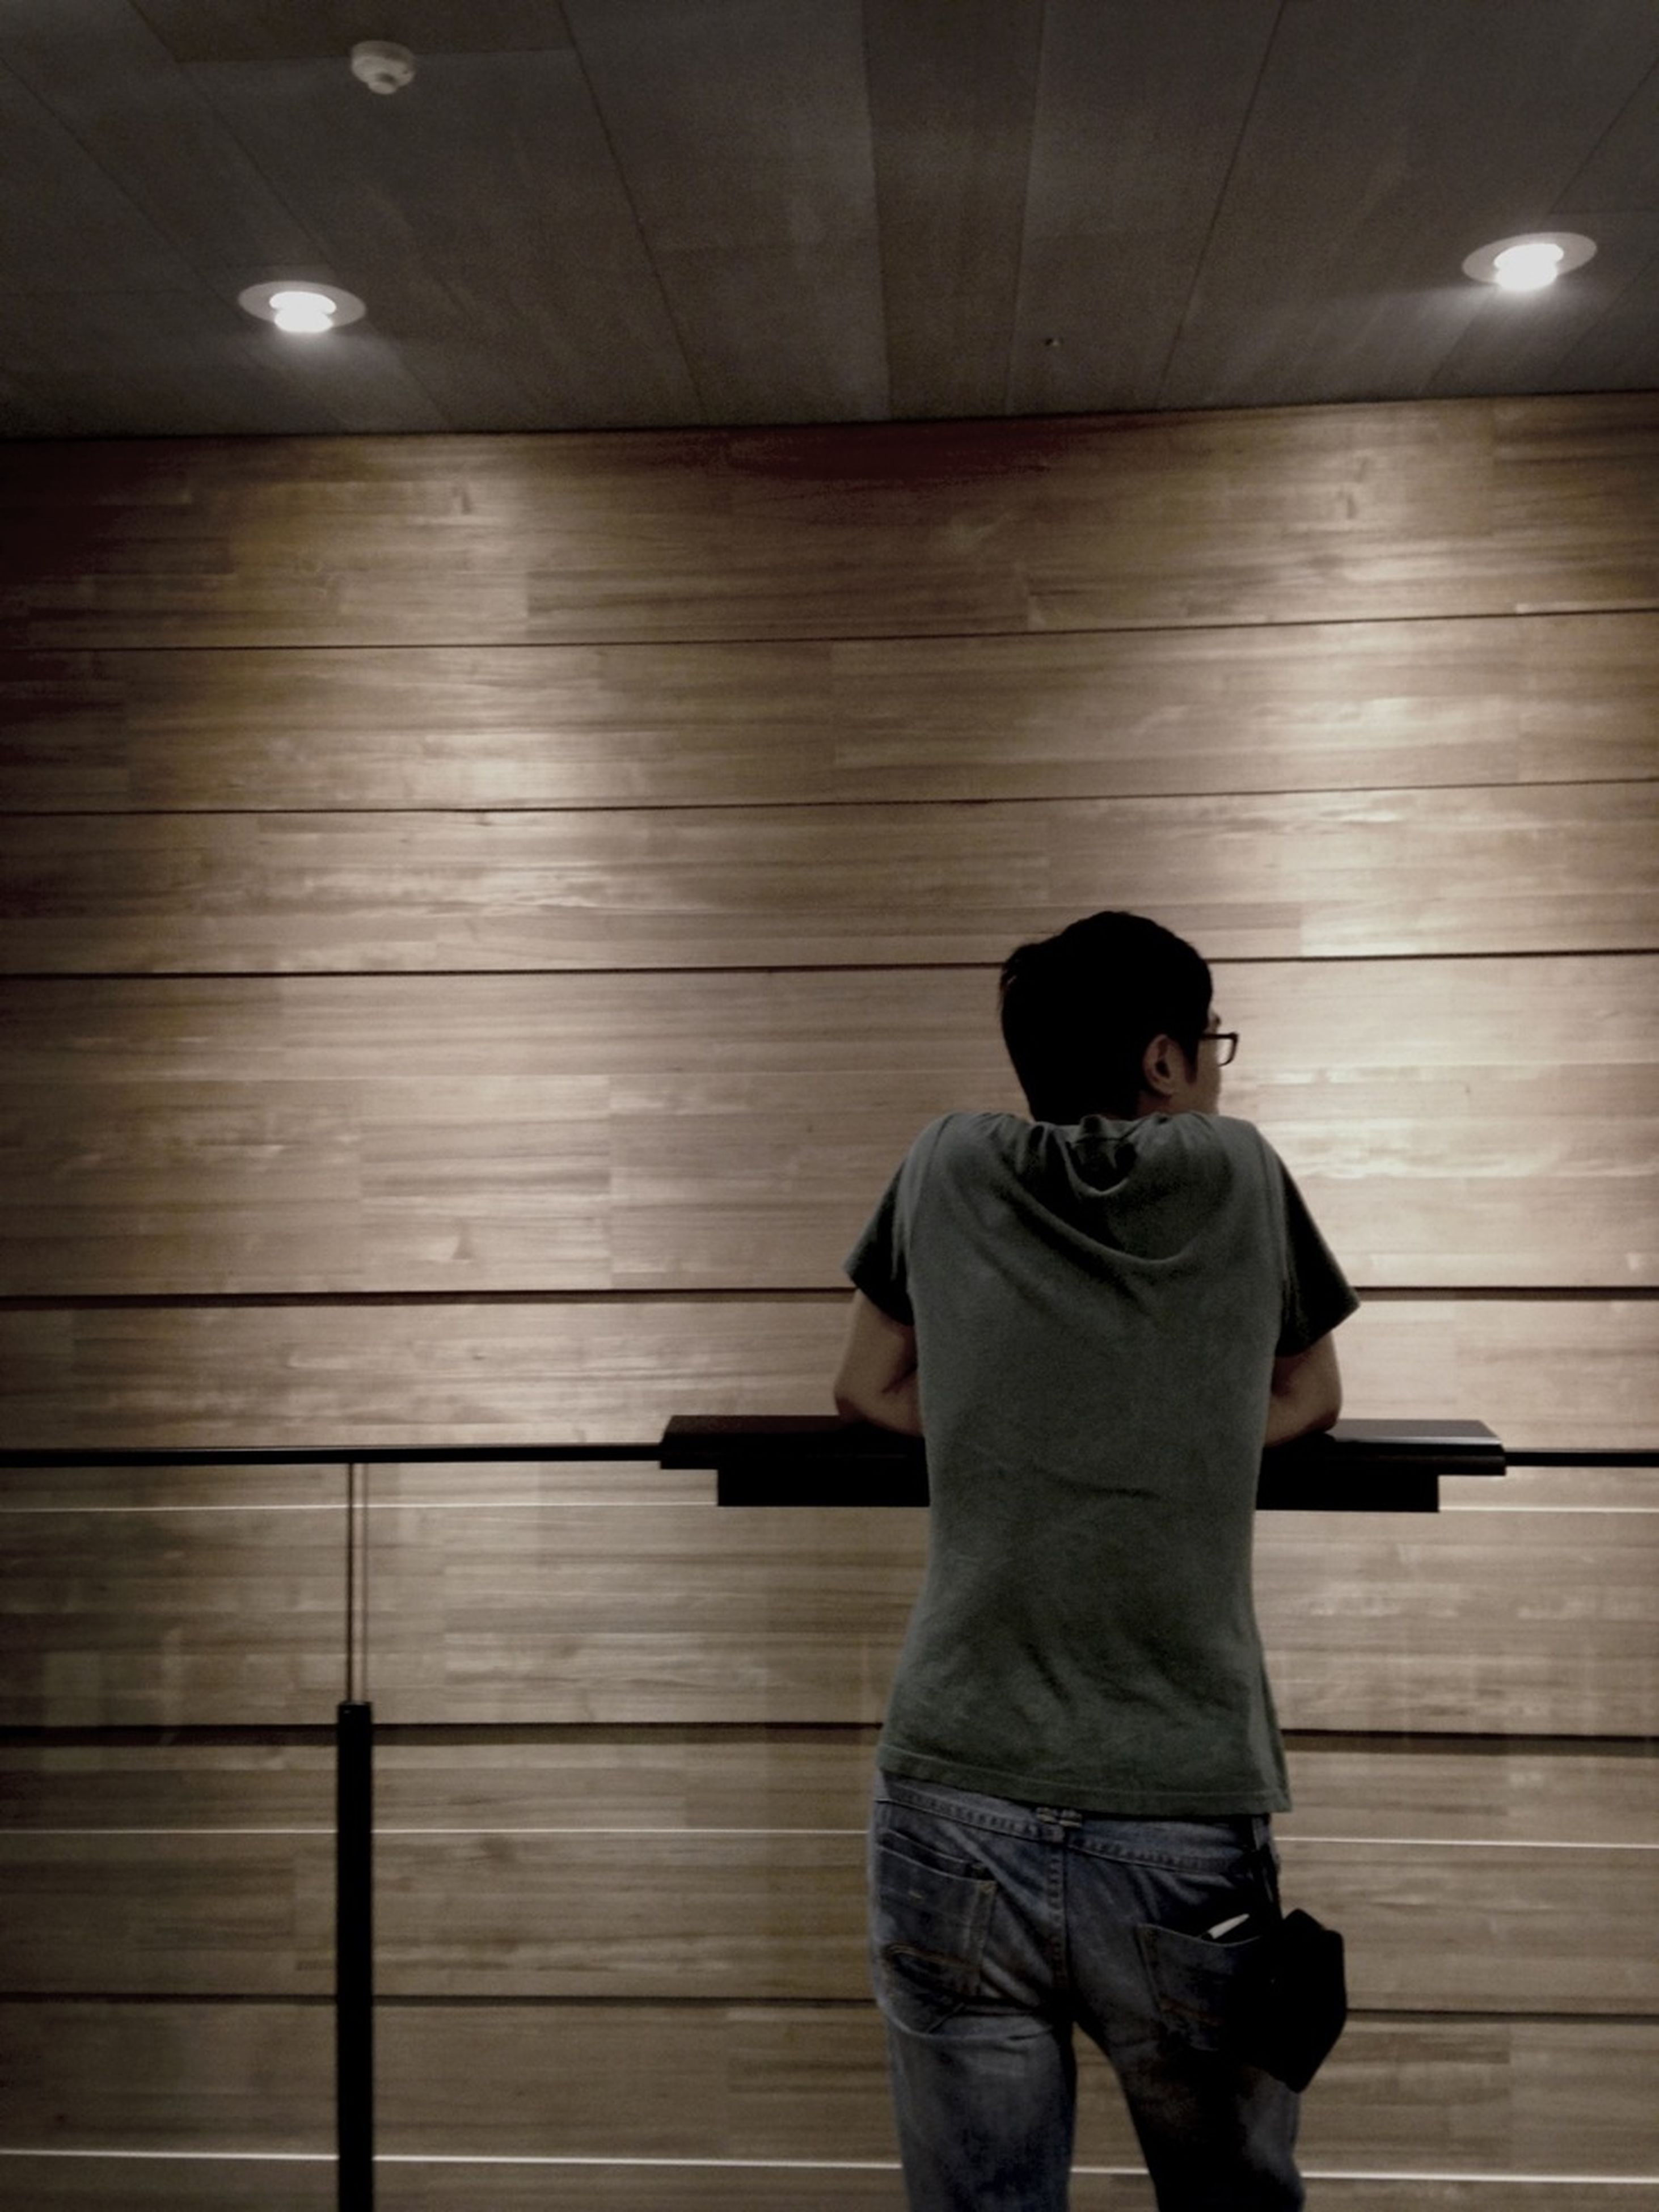 indoors, lifestyles, standing, leisure activity, casual clothing, rear view, three quarter length, men, technology, wood - material, full length, person, waist up, photographing, railing, photography themes, illuminated, connection